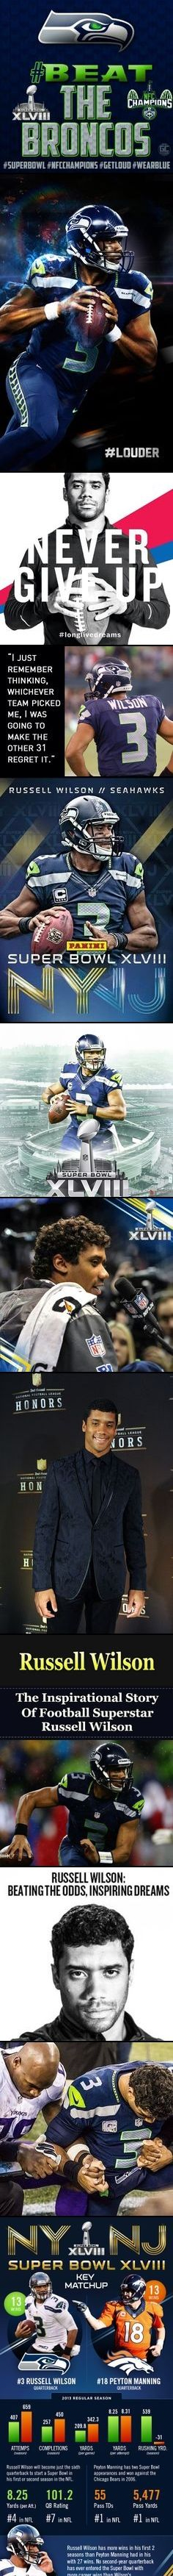 RUSSELL WILSON led the Seattle Seahawks to a dominating 43-8 victory in Super Bowl XLVIII. It was a team win with touchdowns from the defense & special teams, but Wilson was the Seahawks' architect Sunday night & over the past 2 seasons. Wilson completed 72% of his throws Sunday for 206 yards & two touchdowns.